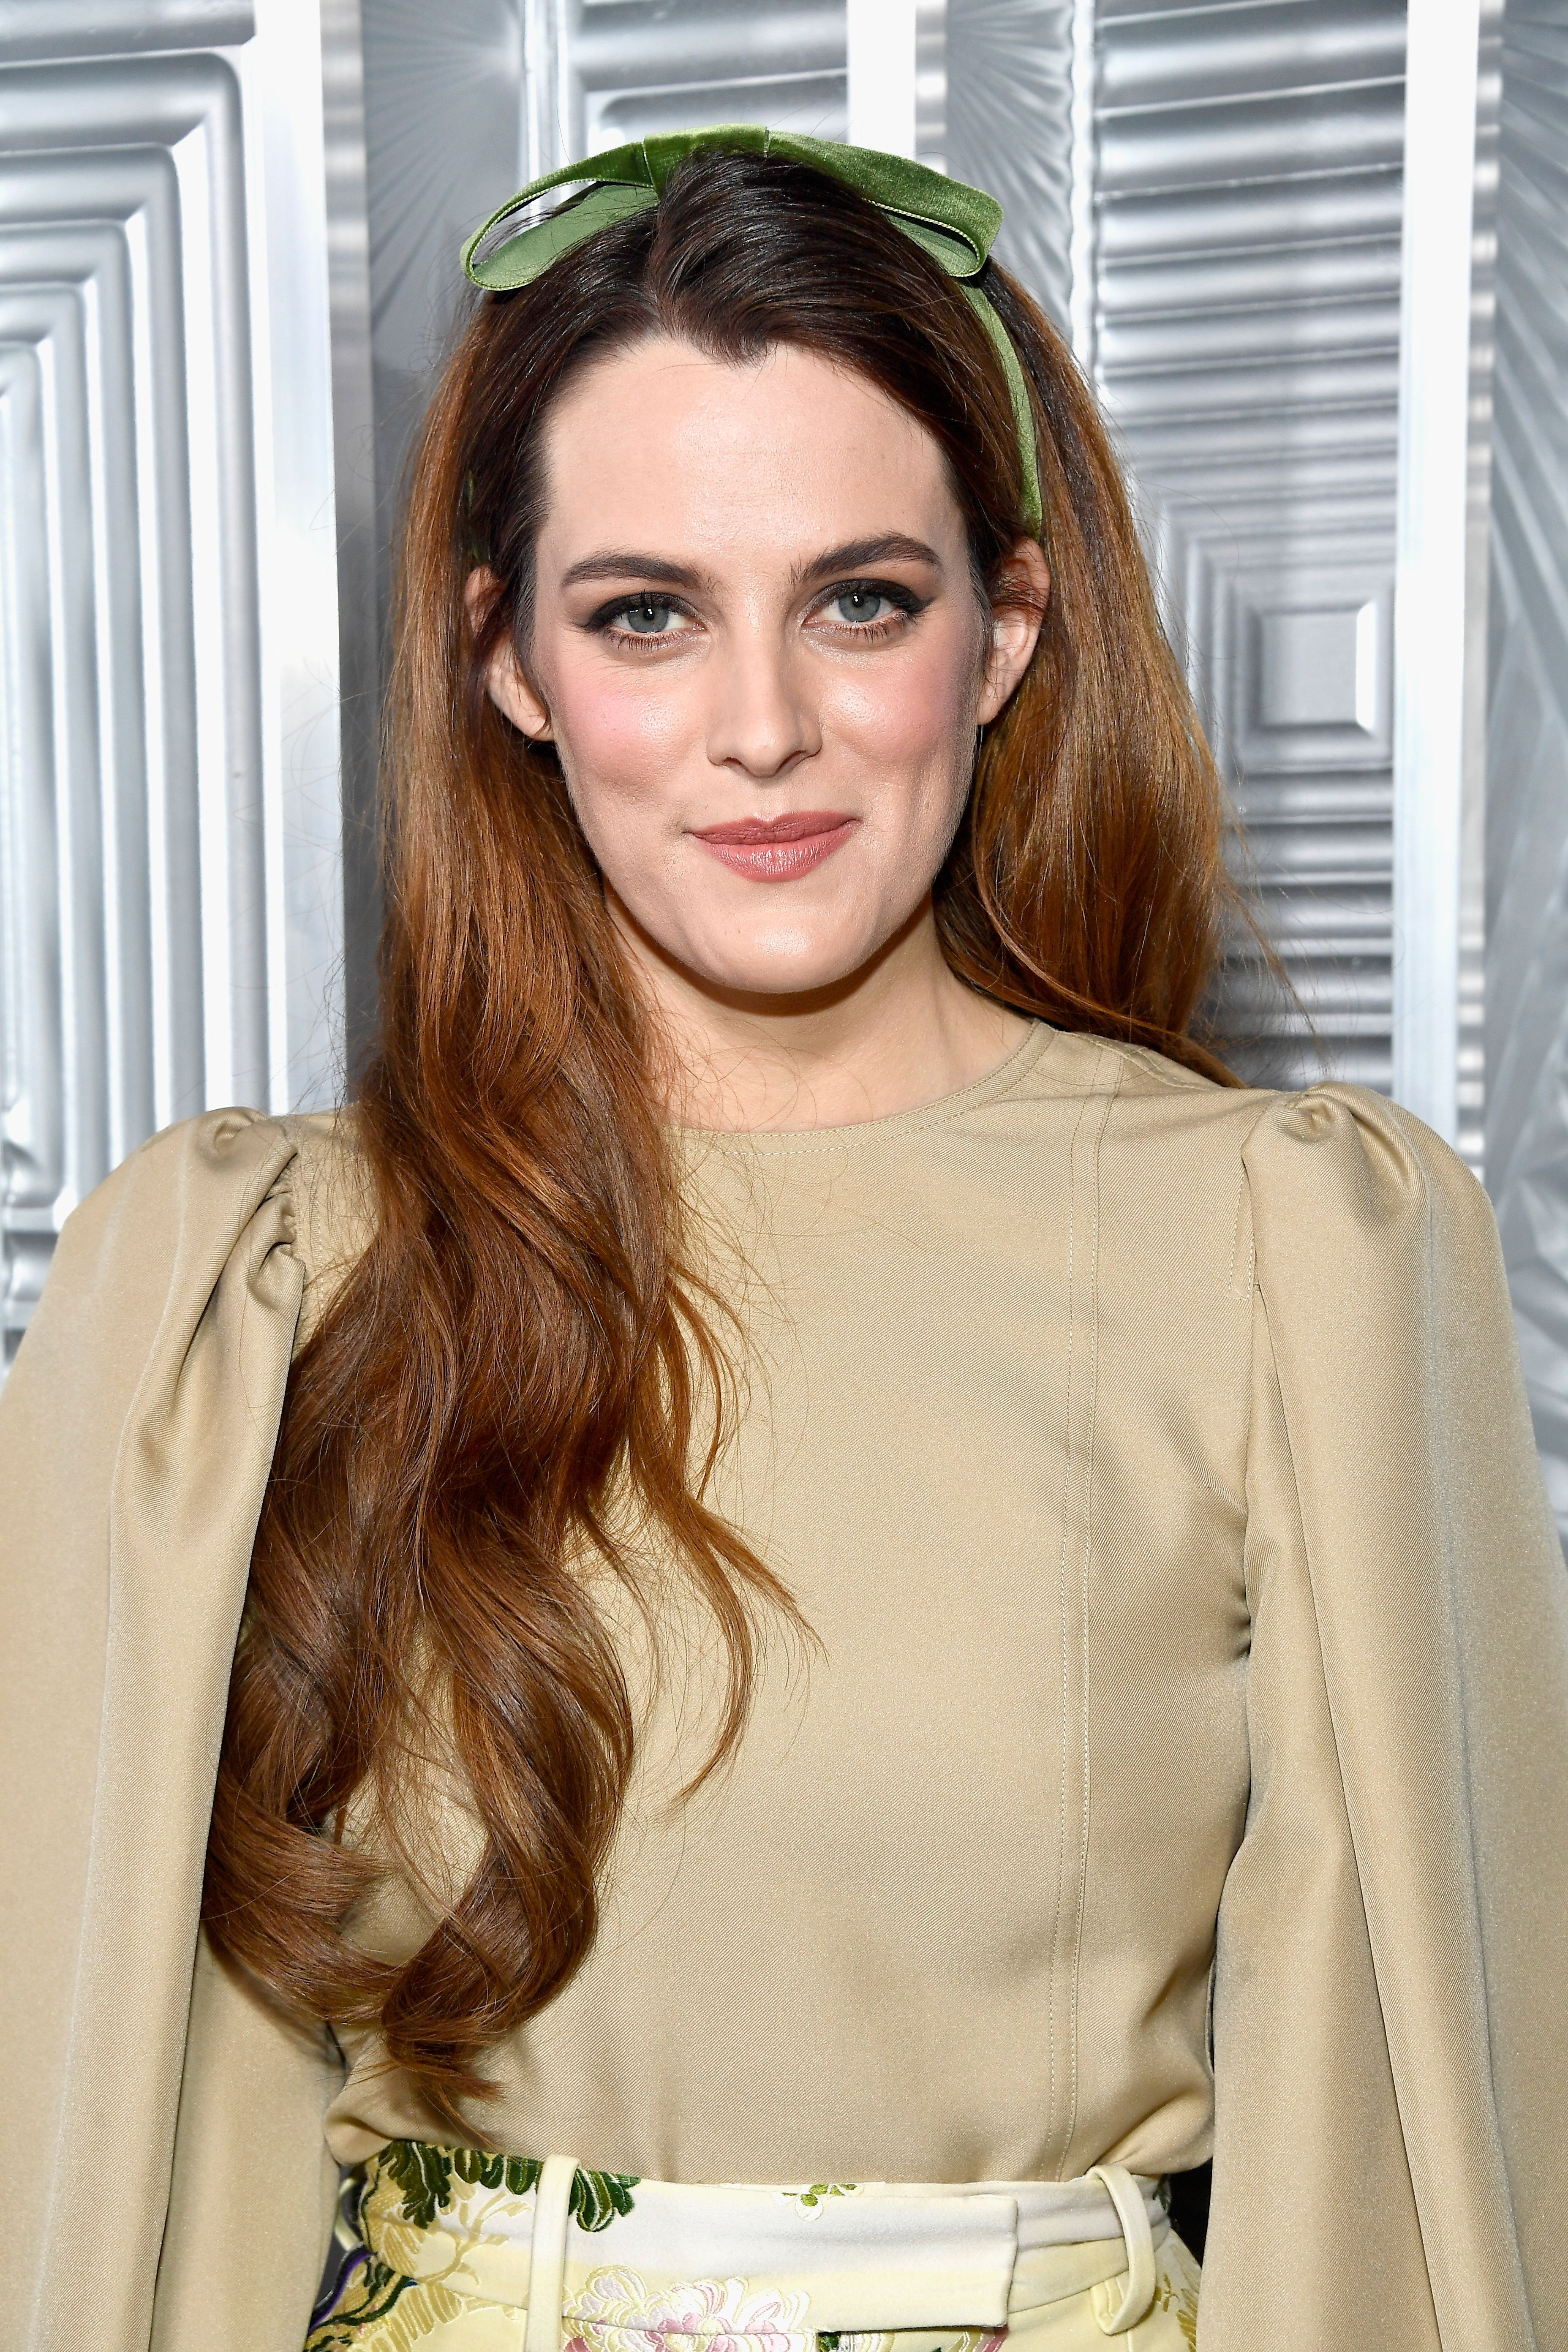 """Riley Keough during """"ELLE's"""" 24th Annual Women in Hollywood Celebration on October 16, 2017, in Los Angeles, California   Photo: Getty Images"""